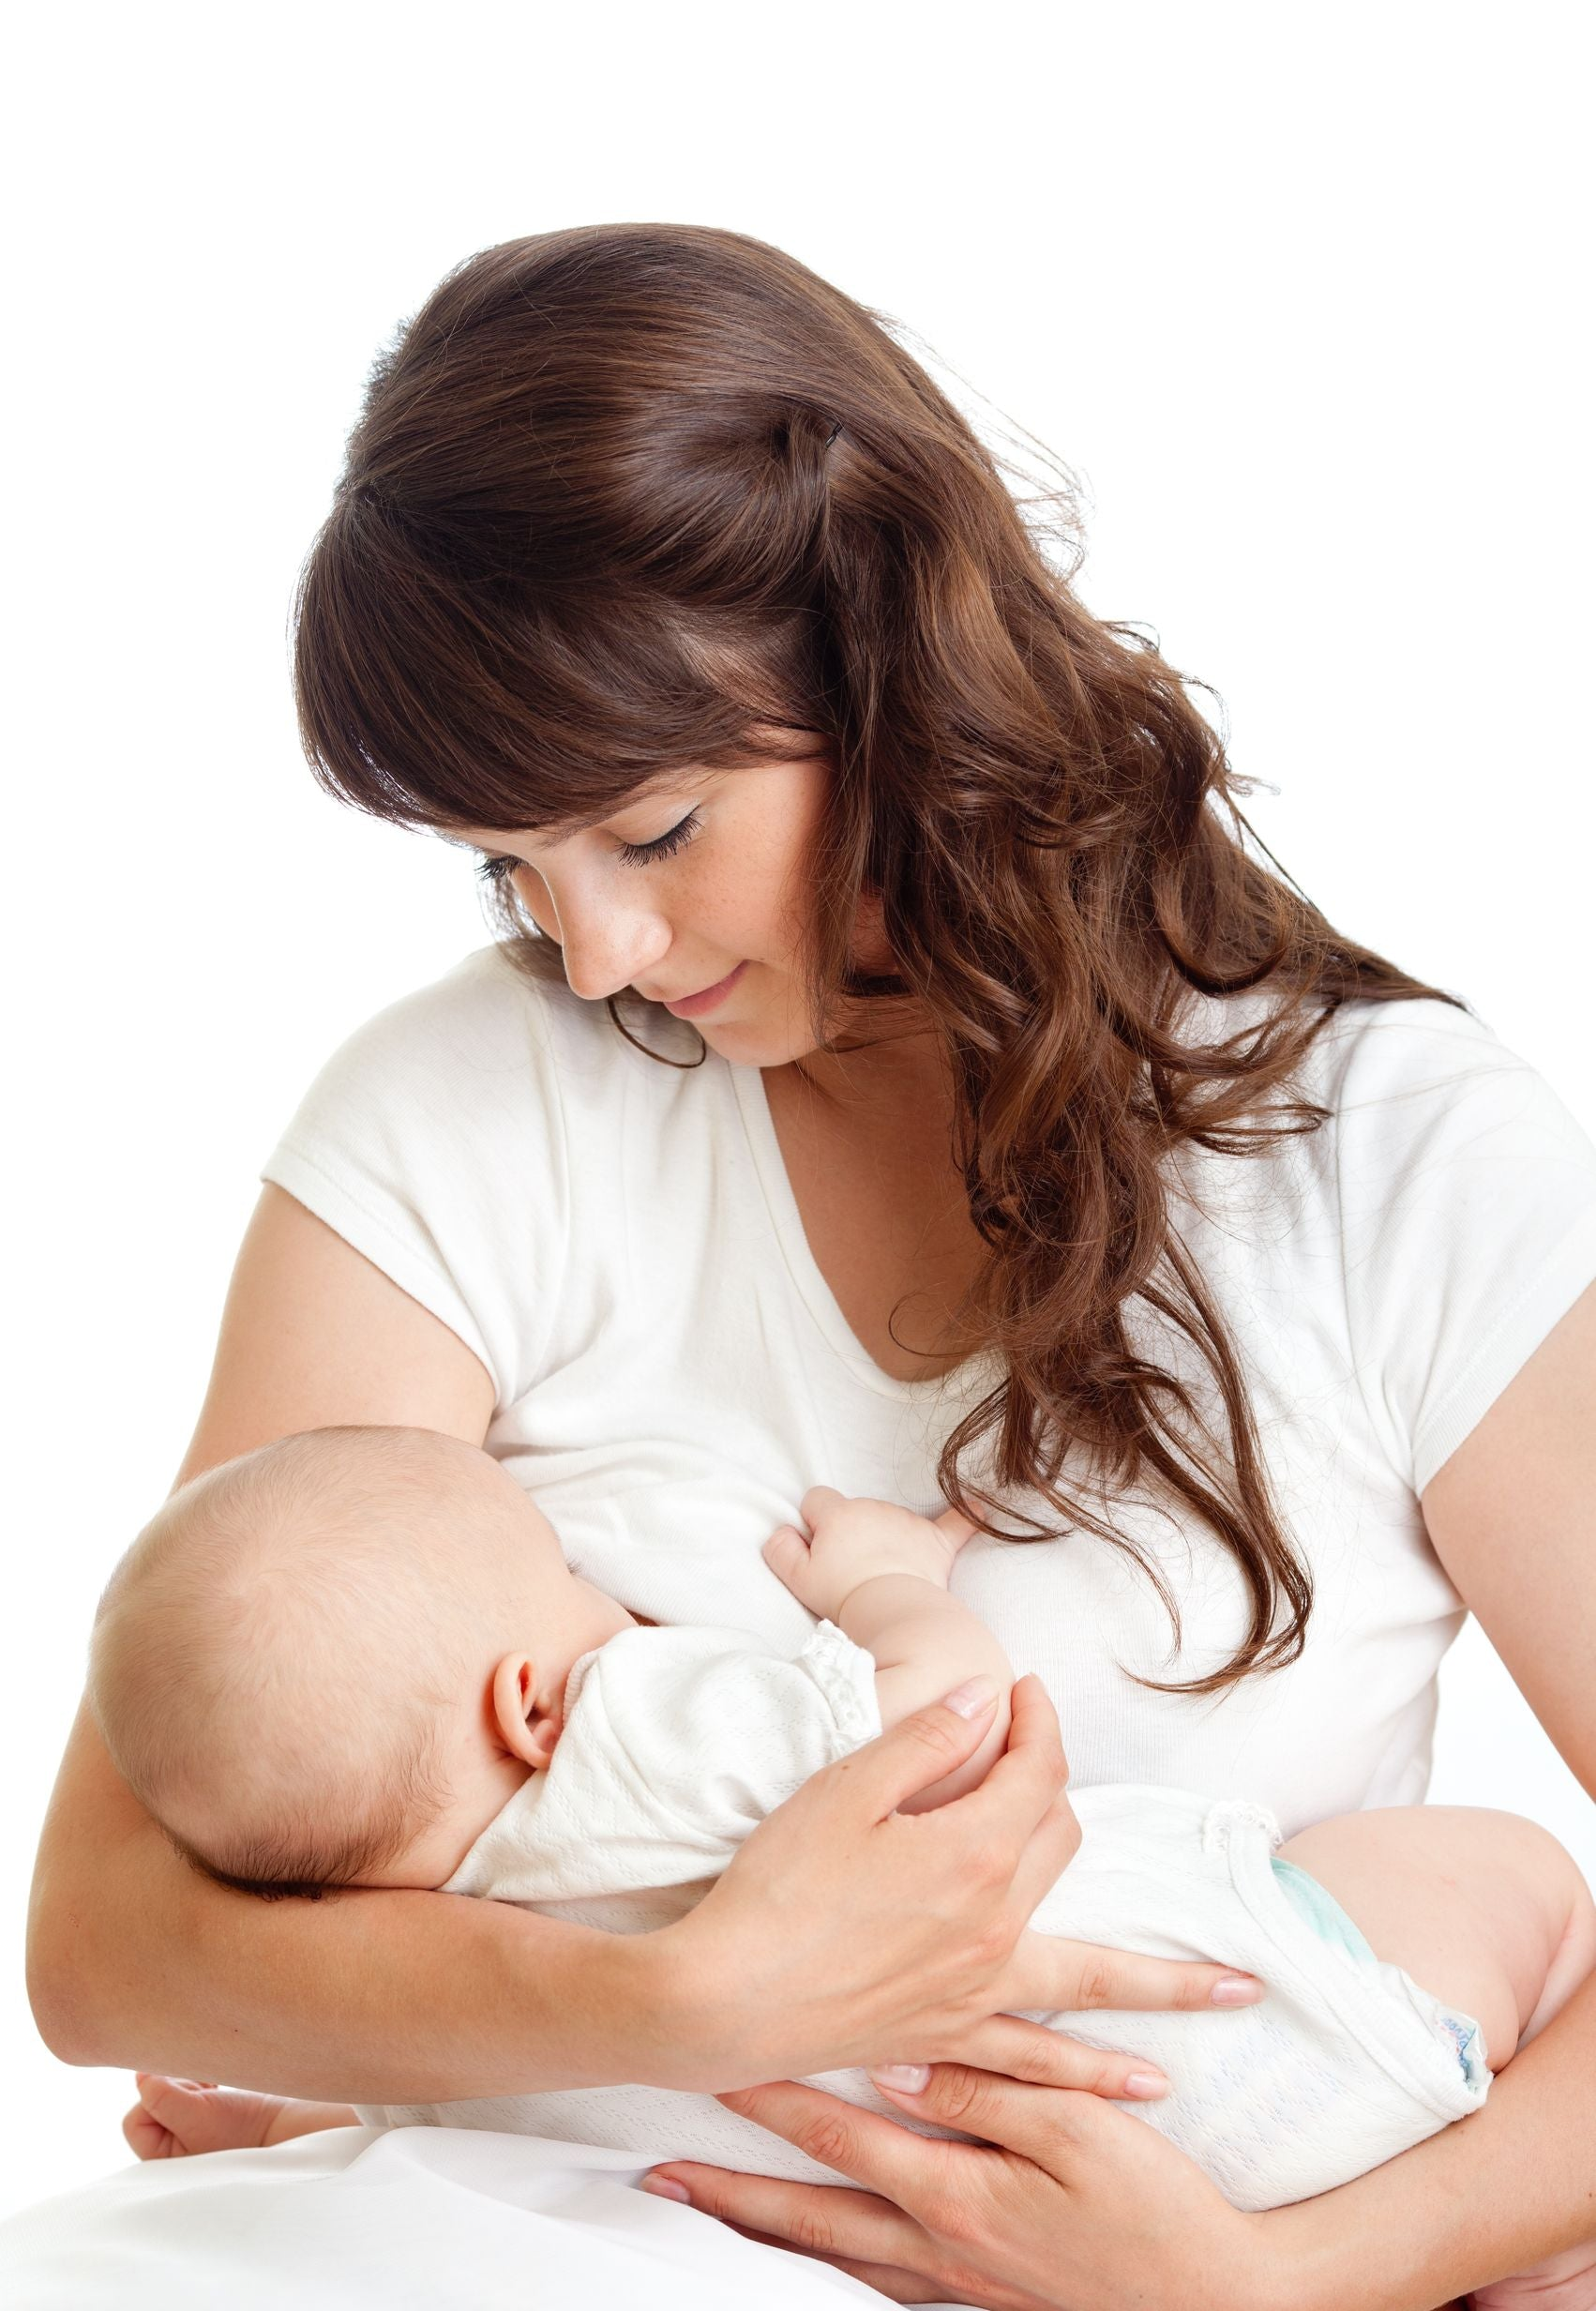 Baby, Baby Feeding For Newborns